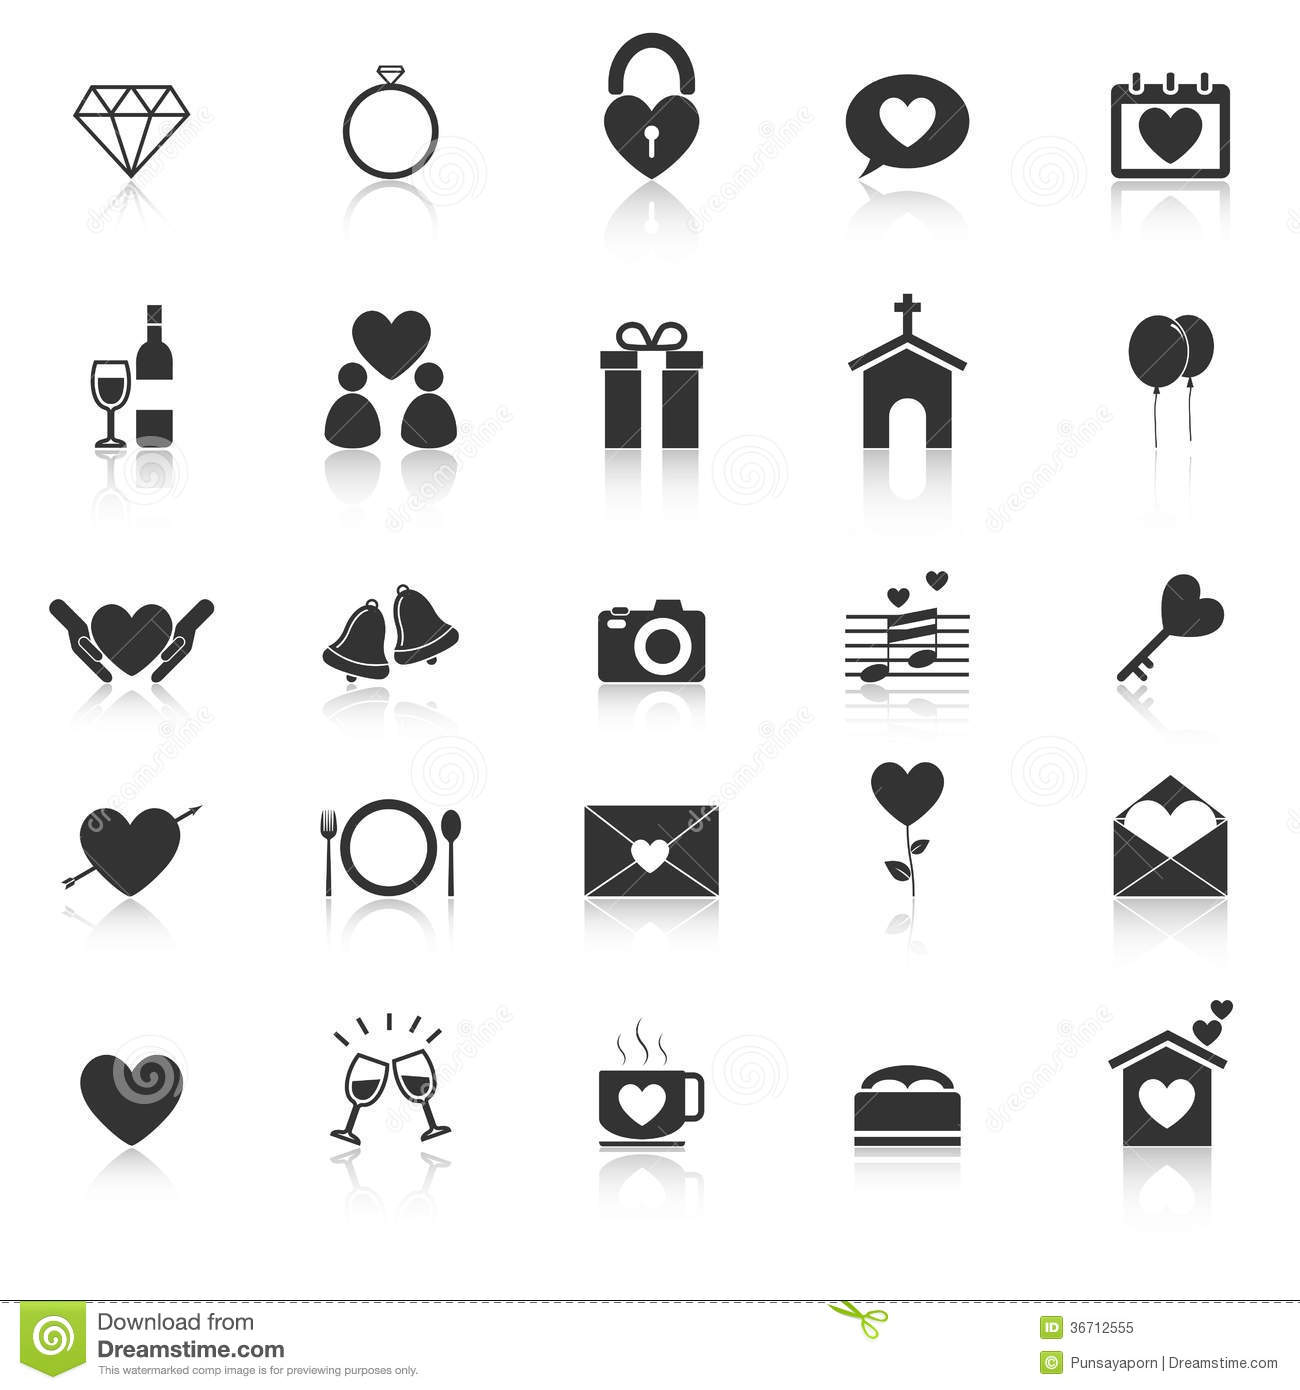 Free Vector Wedding Clipart